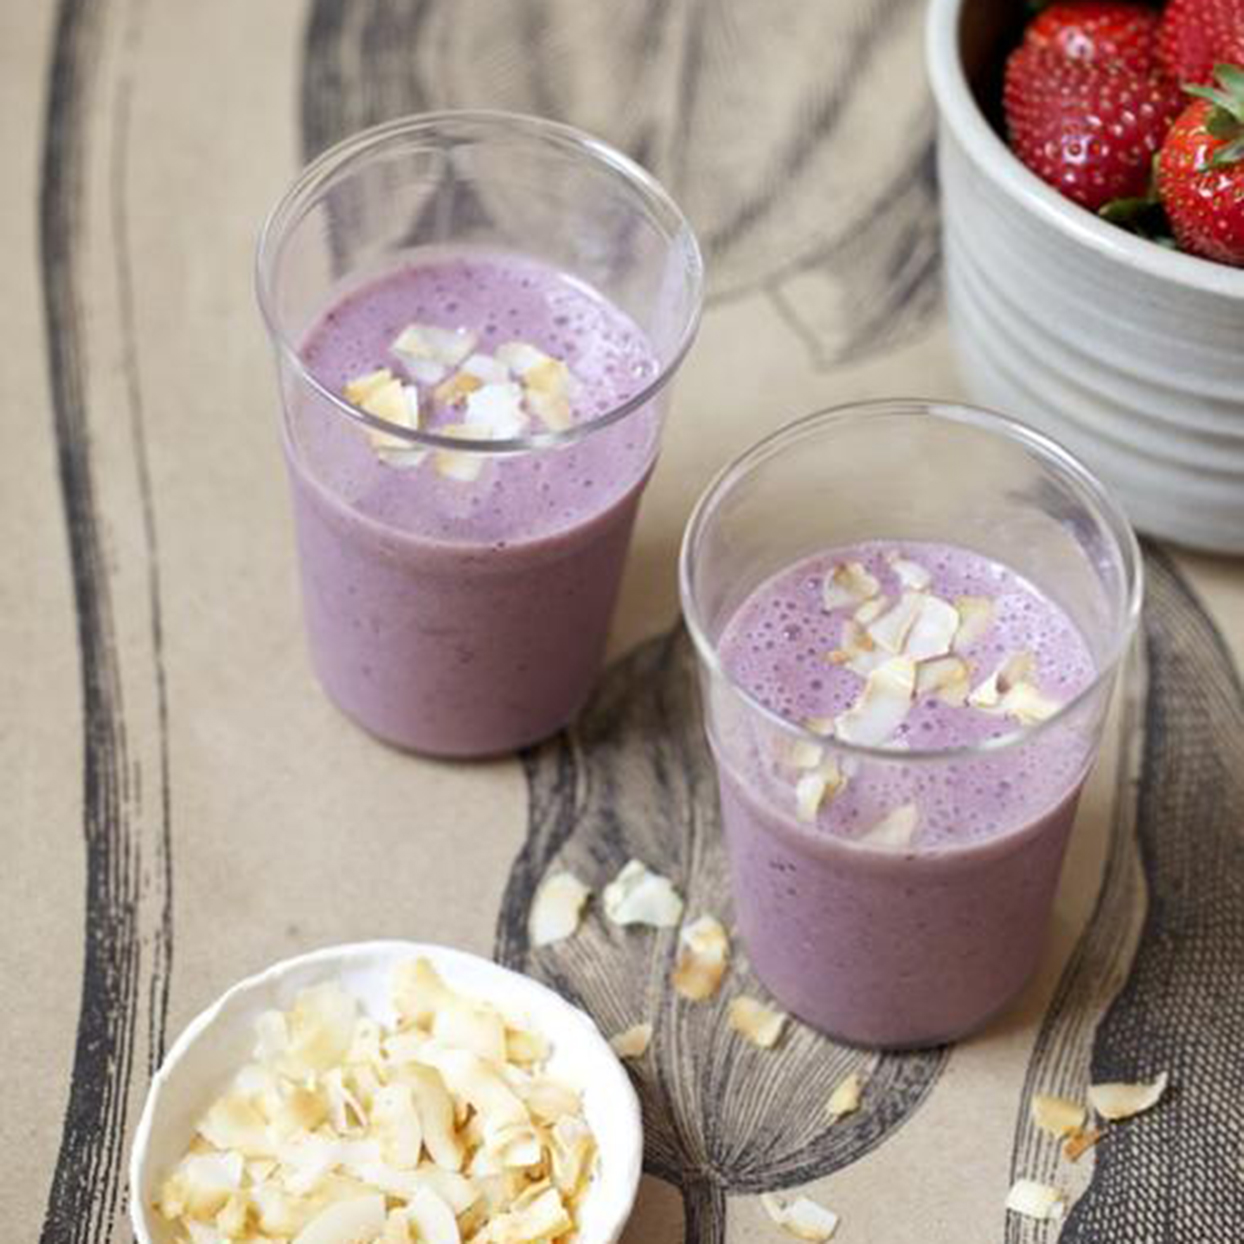 Strawberry & Toasted Coconut Morning Smoothie